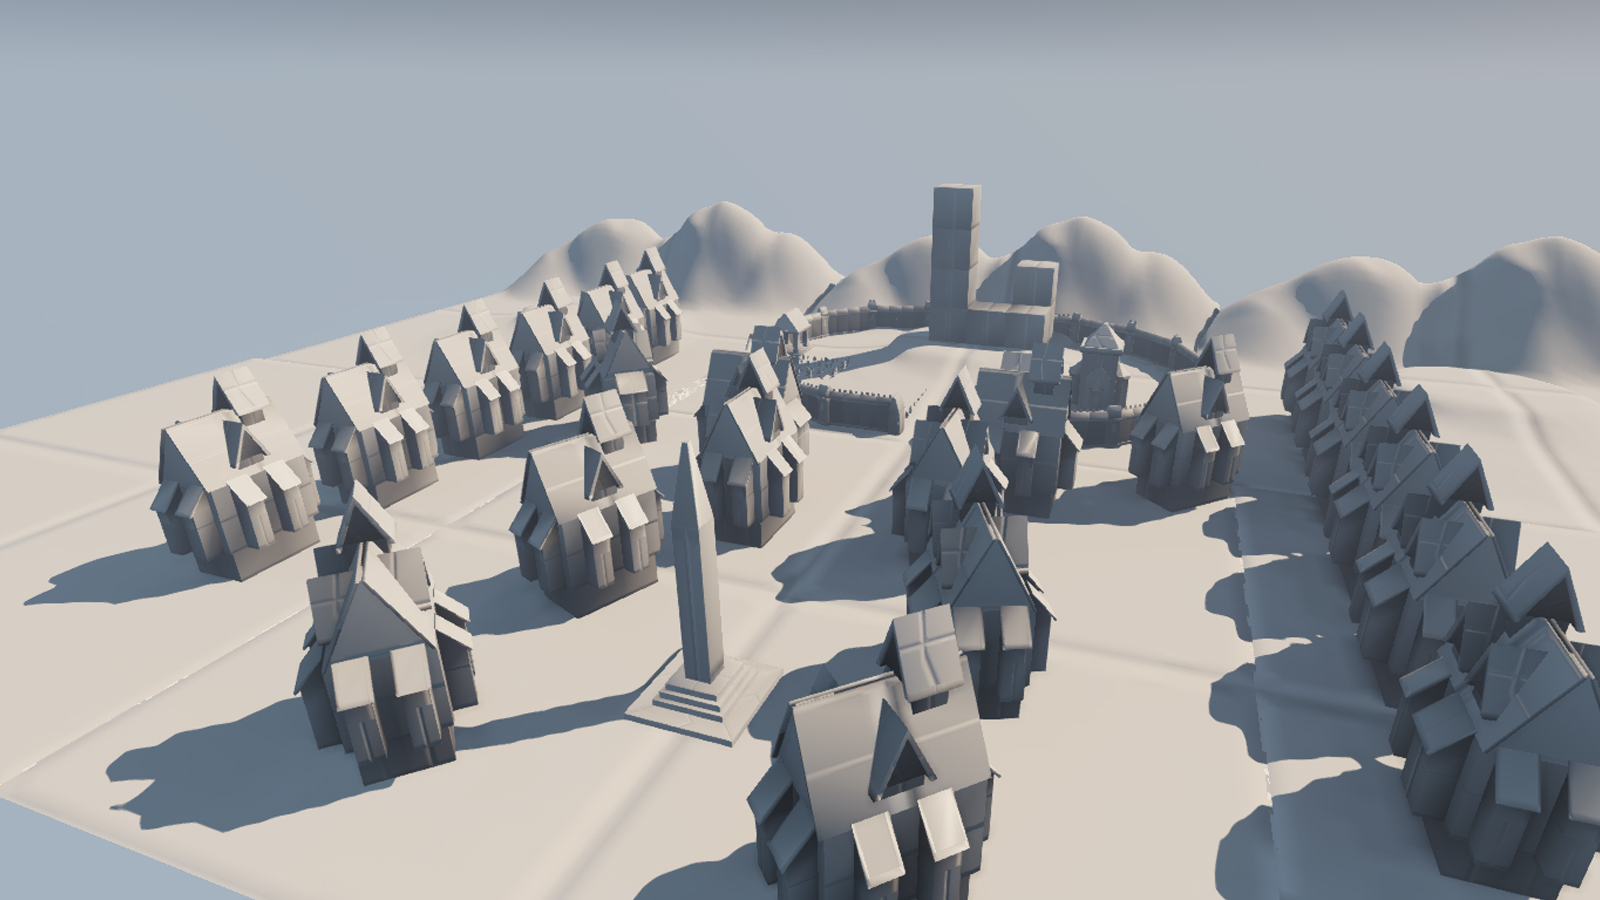 Creating a stylized world with Unreal Engine 4